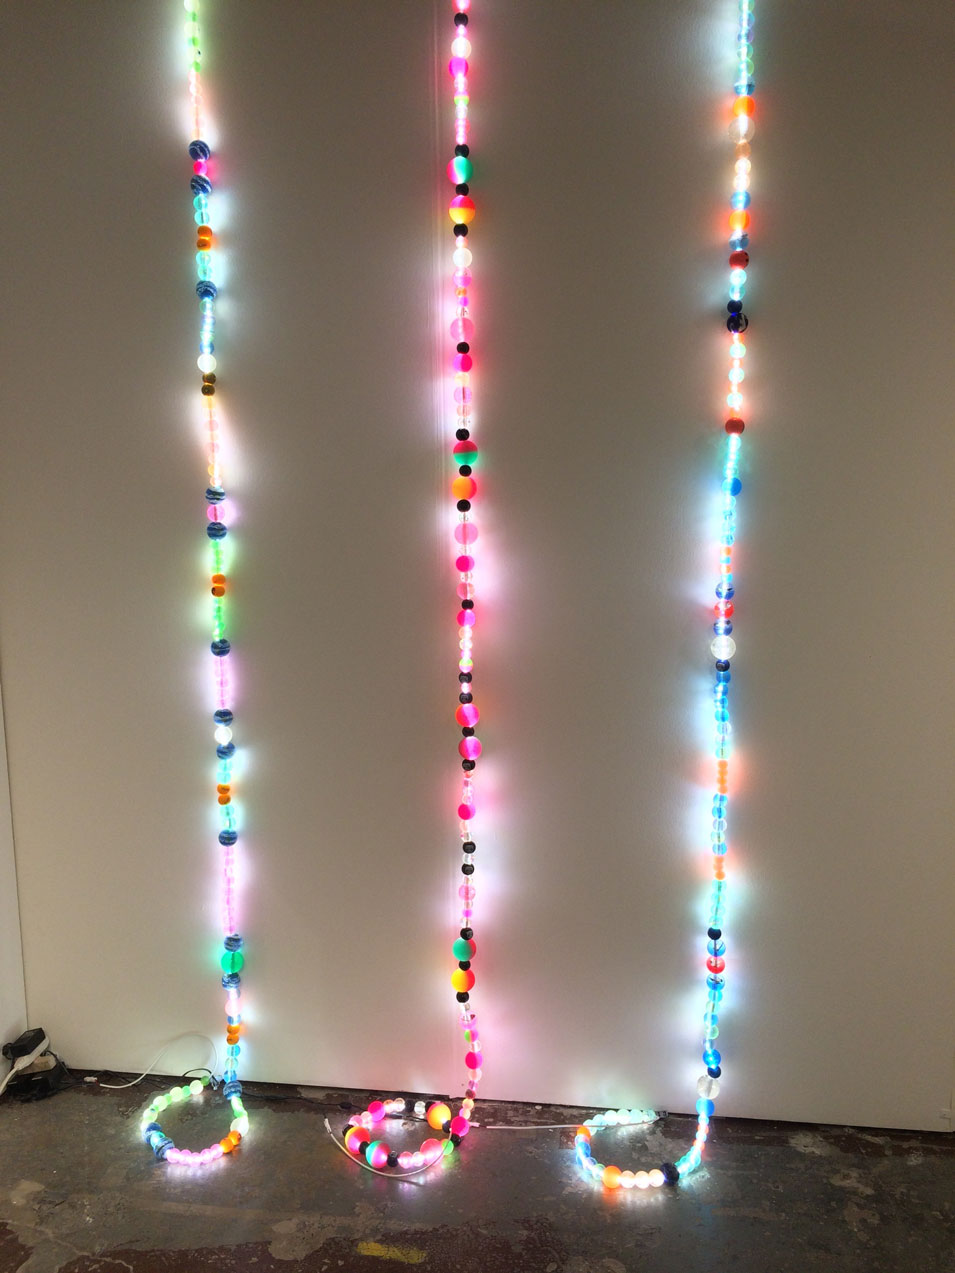 Jessie Stead,  Beaded Interludes (Intestinal Dimensions),  247365, New York, NY